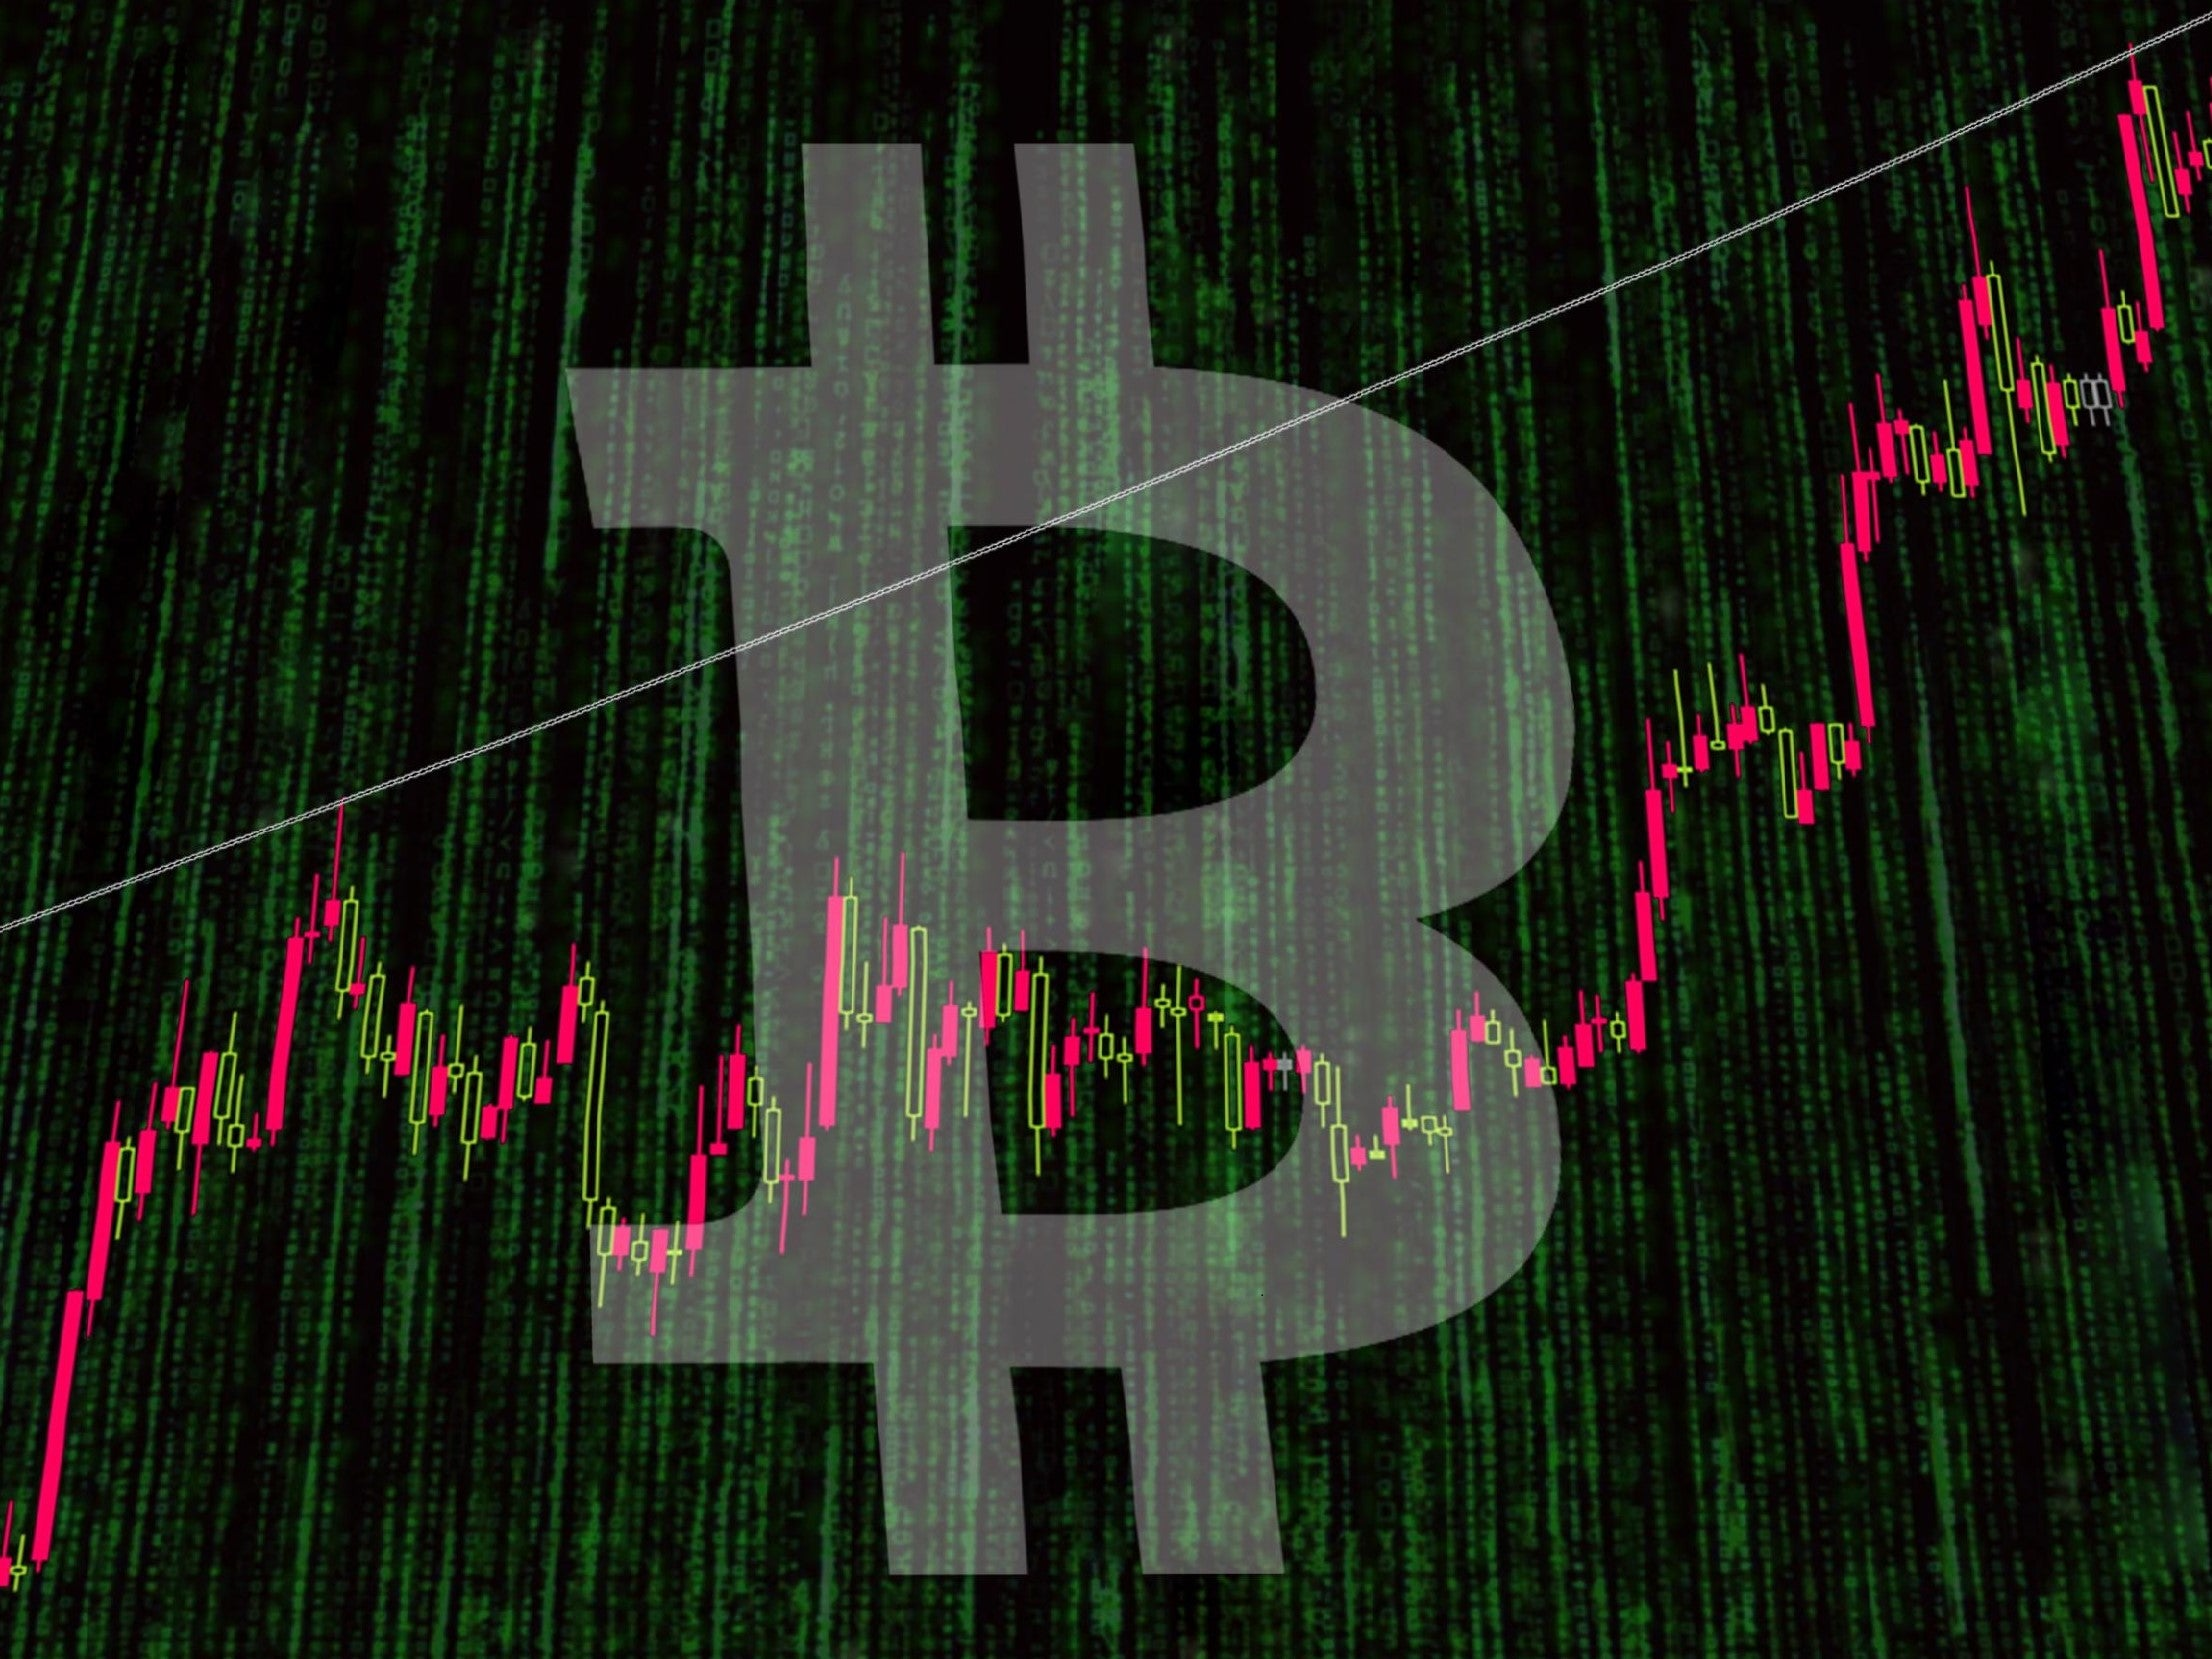 Bitcoin price - LIVE: Cryptocurrency value steadies after spectacular crash